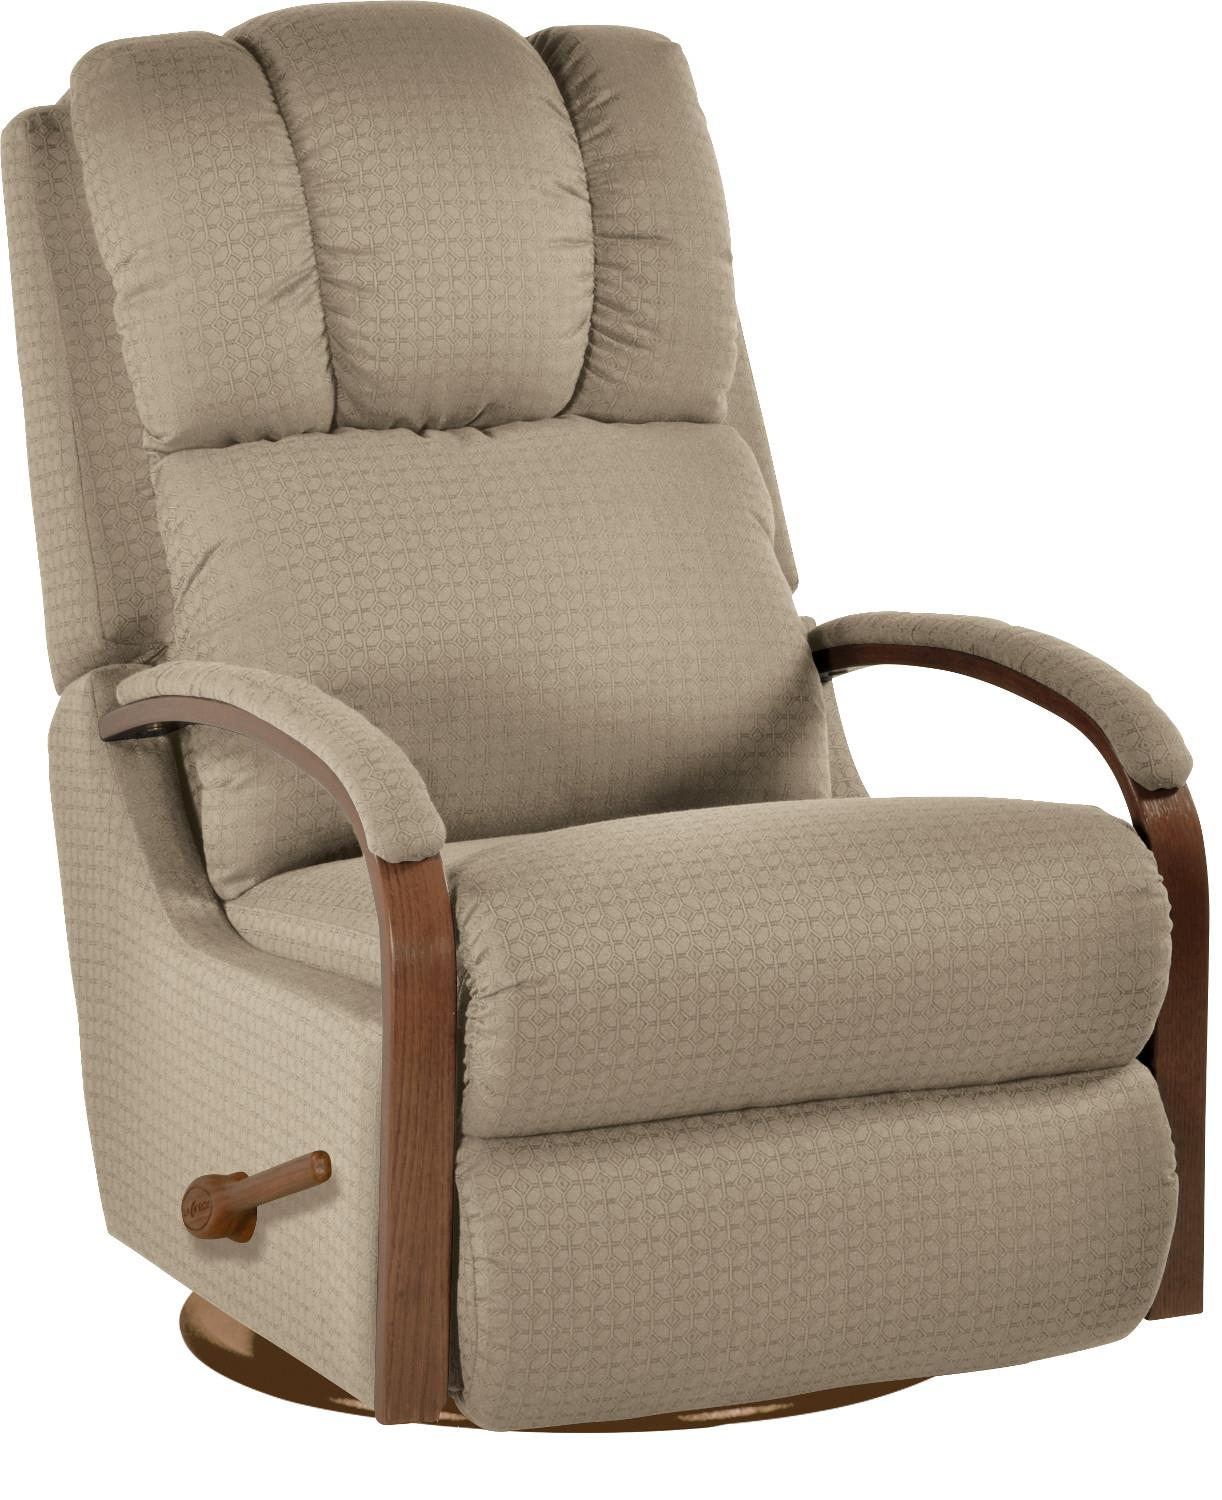 Recliners Swivel Glider Recliner by La-Z-Boy at Home Furnishings Direct